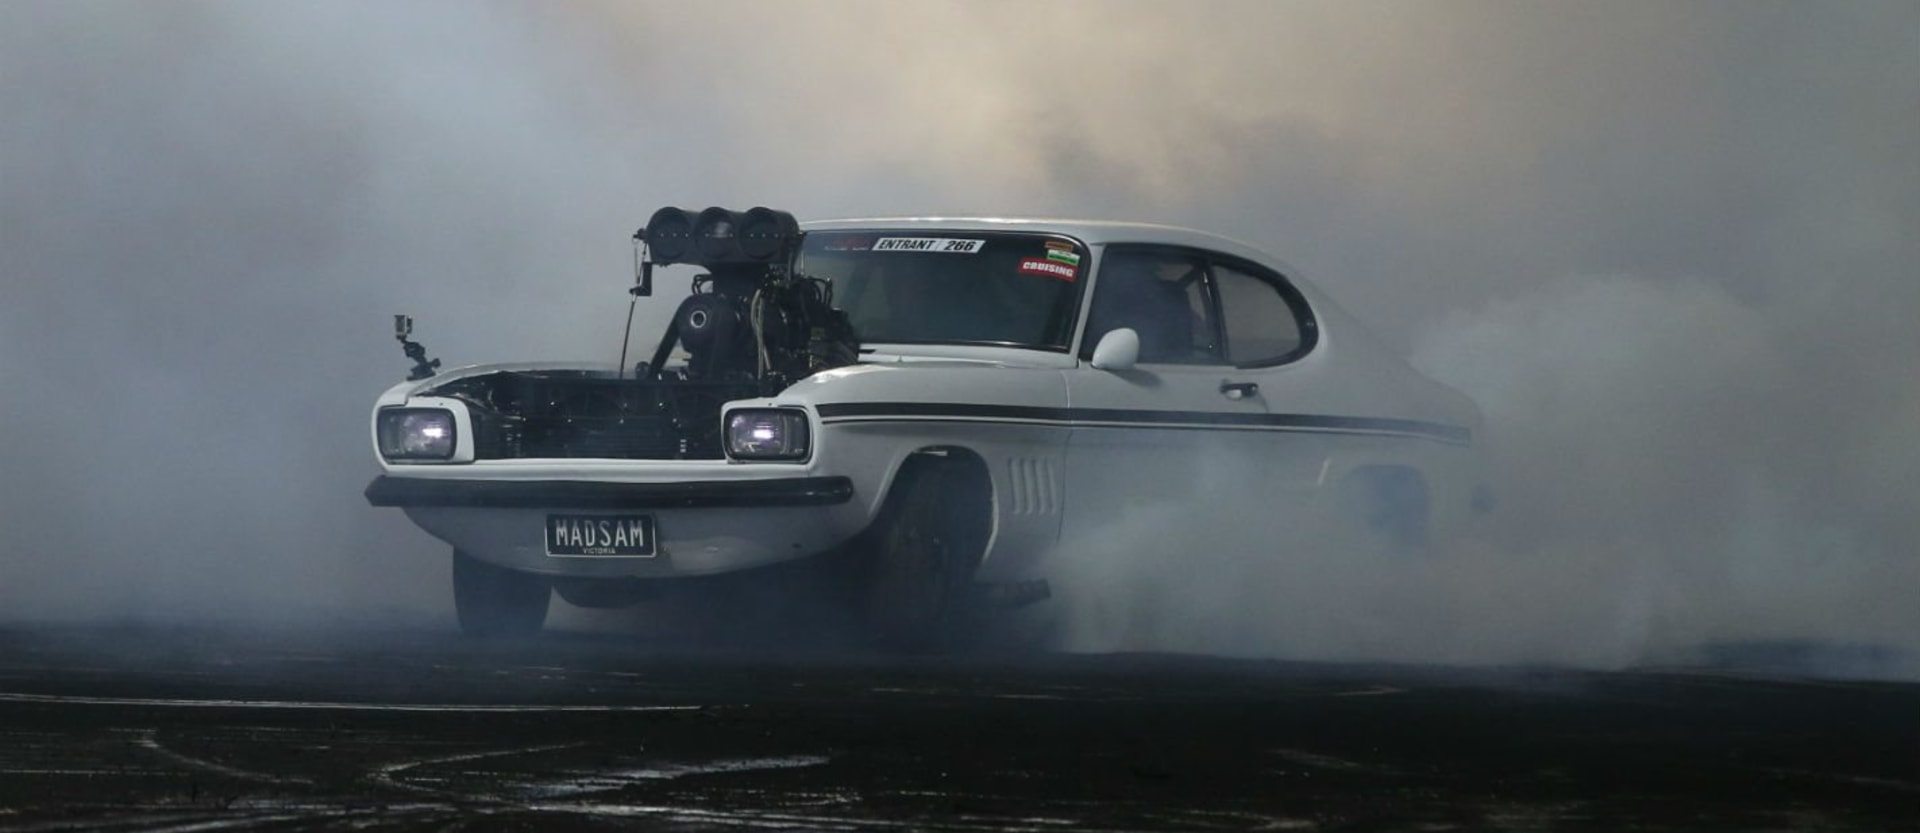 Ford Capri blown burnout MADSAM